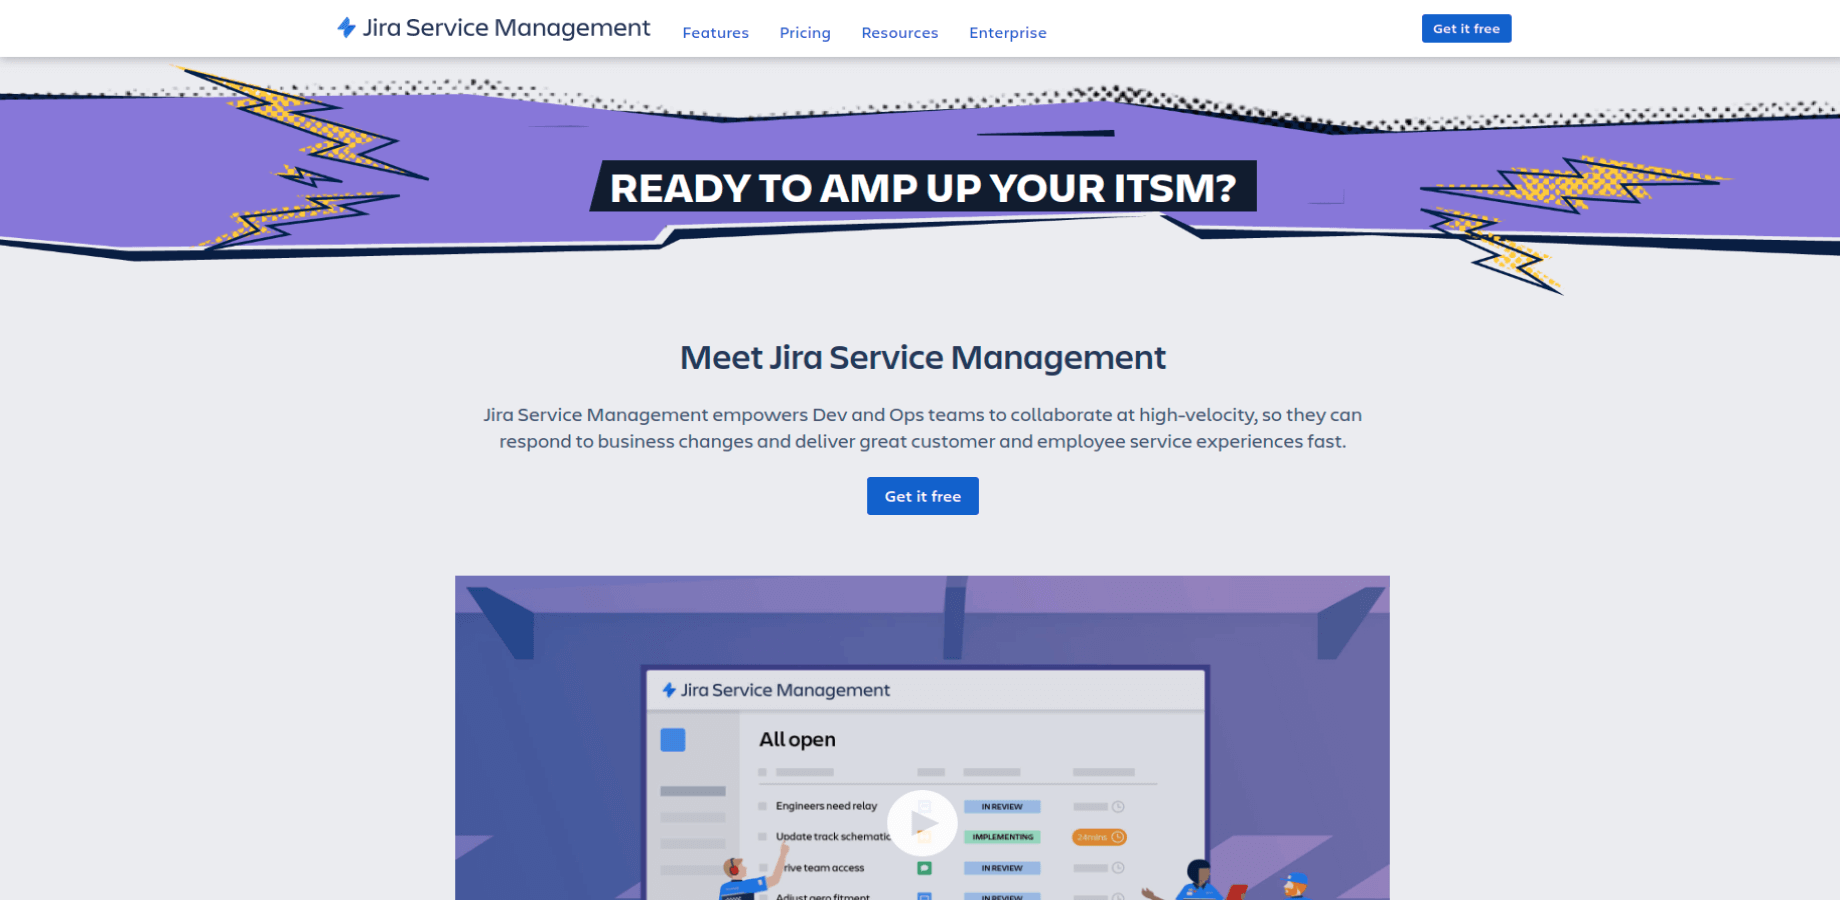 Landing Page of Jira Service Management